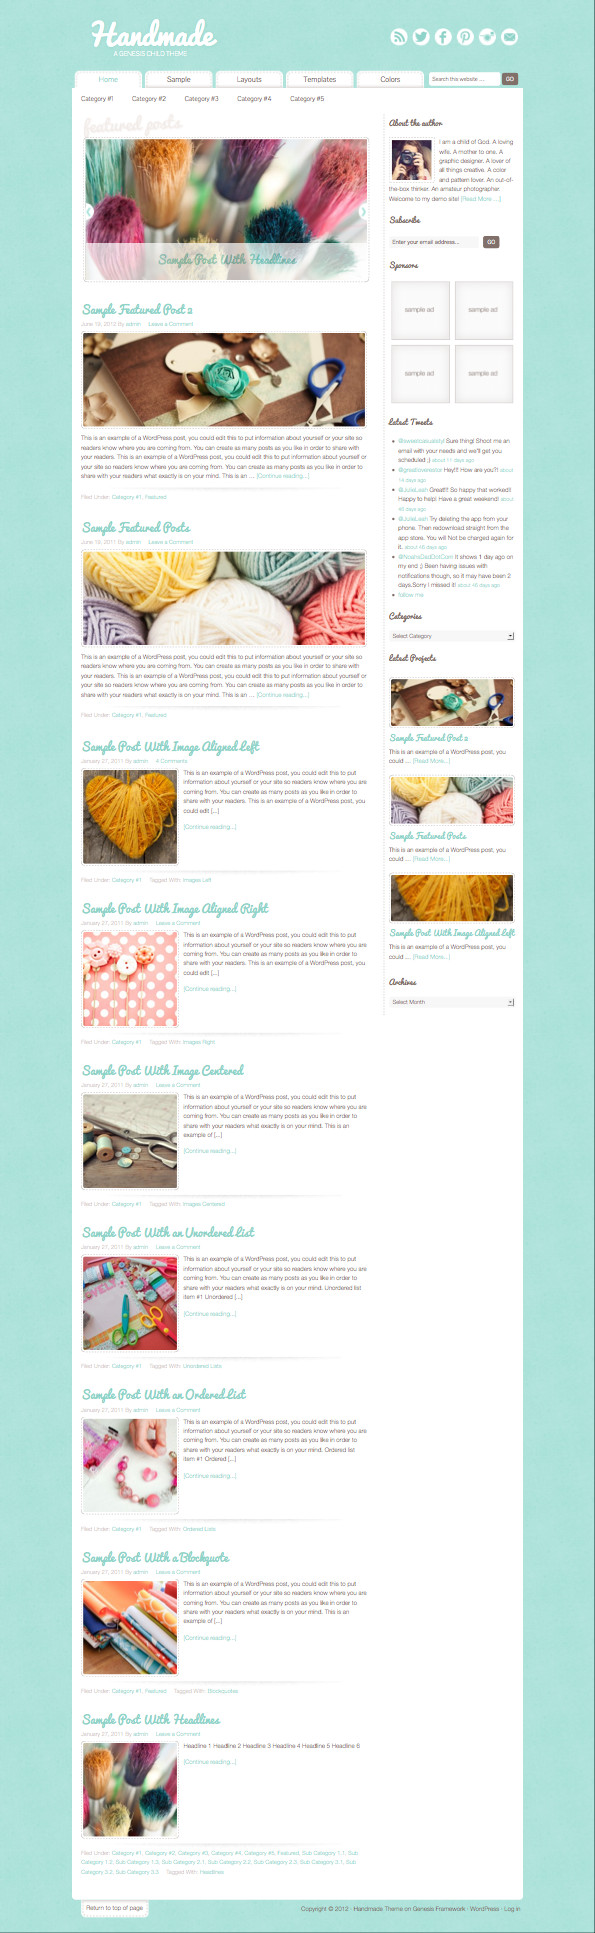 Handmade WordPress Woman Crafts Theme